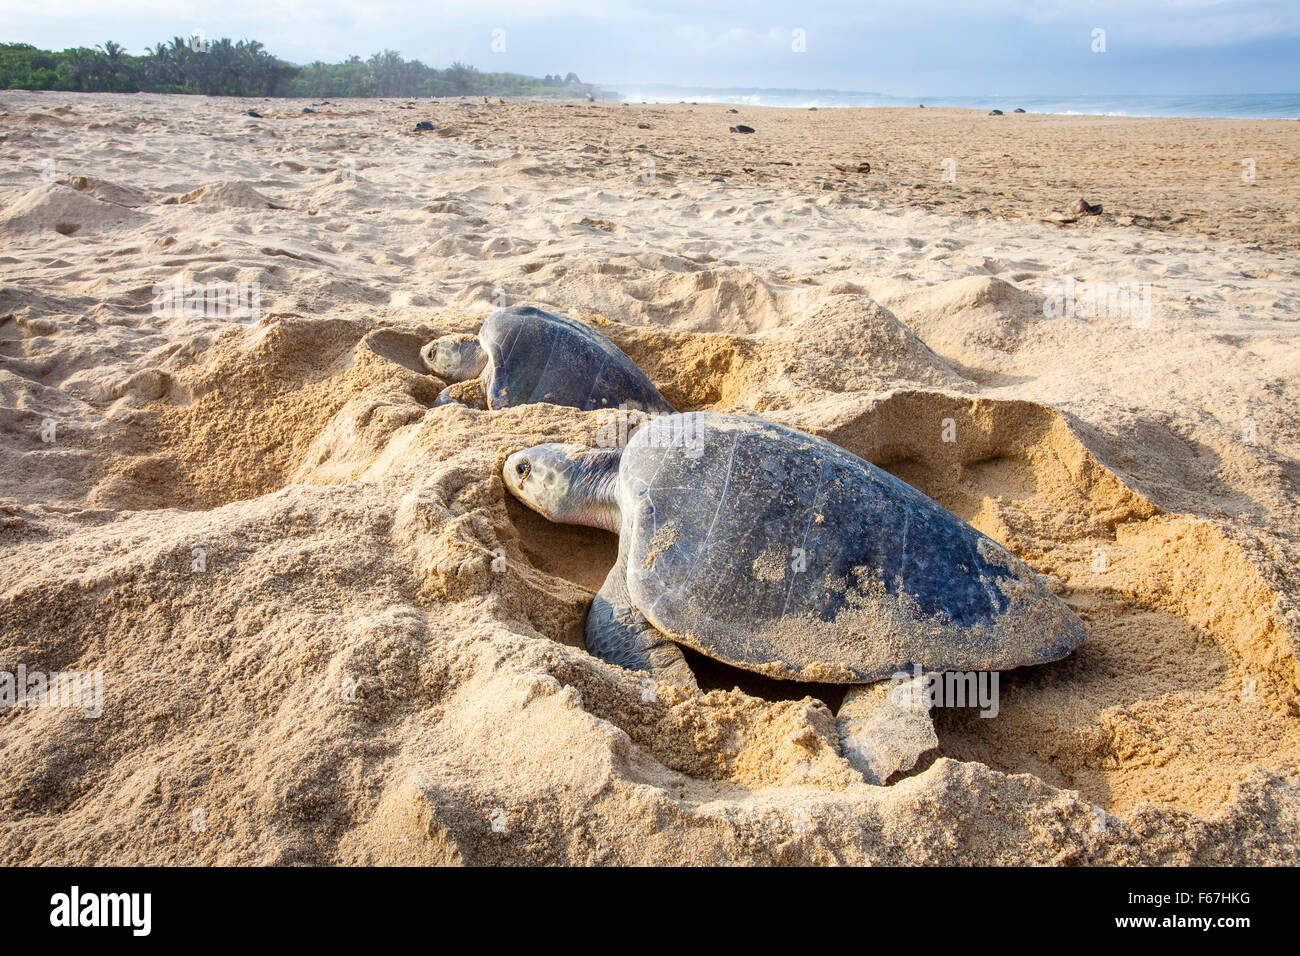 A couple of Olive Ridley sea turtles dig their nests on the Ixtapilla, Michoacan, Mexico beach at sunrise. - Stock Image